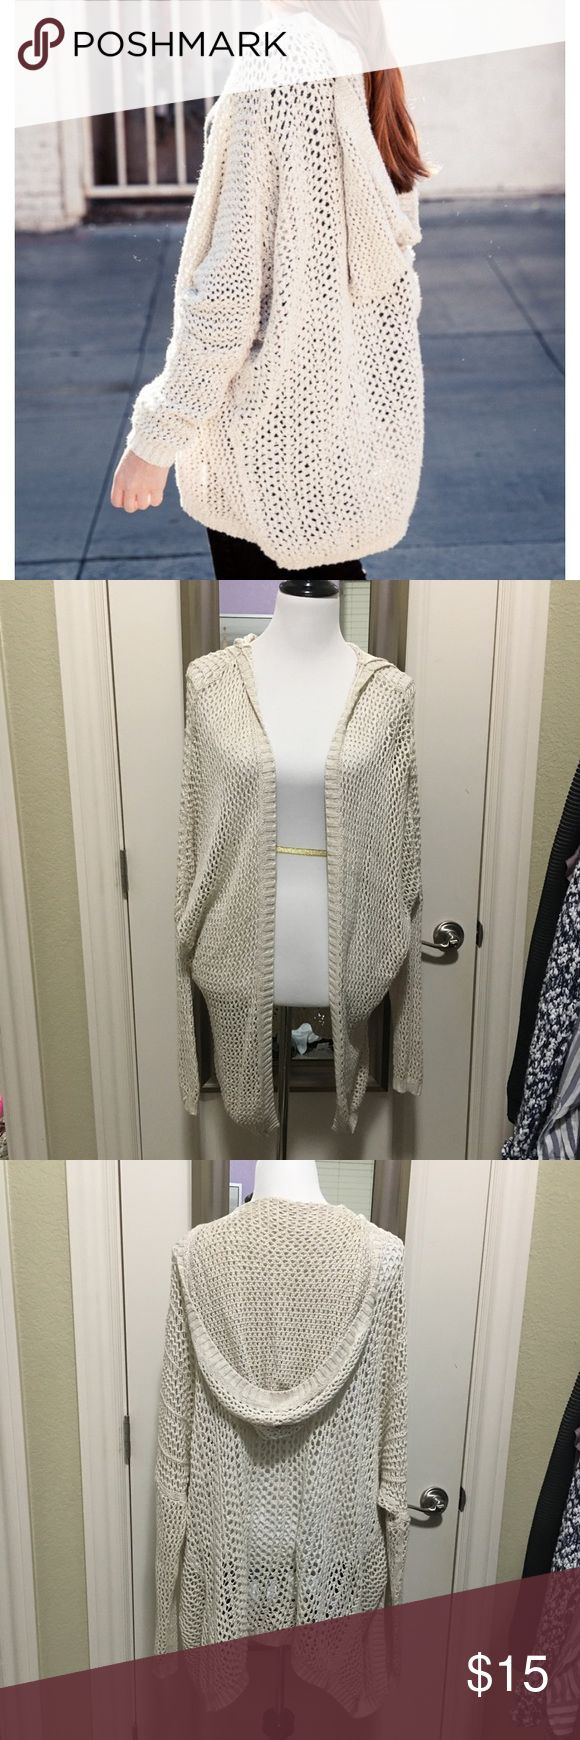 Brandy Melville Cardigan Very well loved. Has some stretching due to being on a hanger. No stains. Brandy Melville Sweaters Cardigans